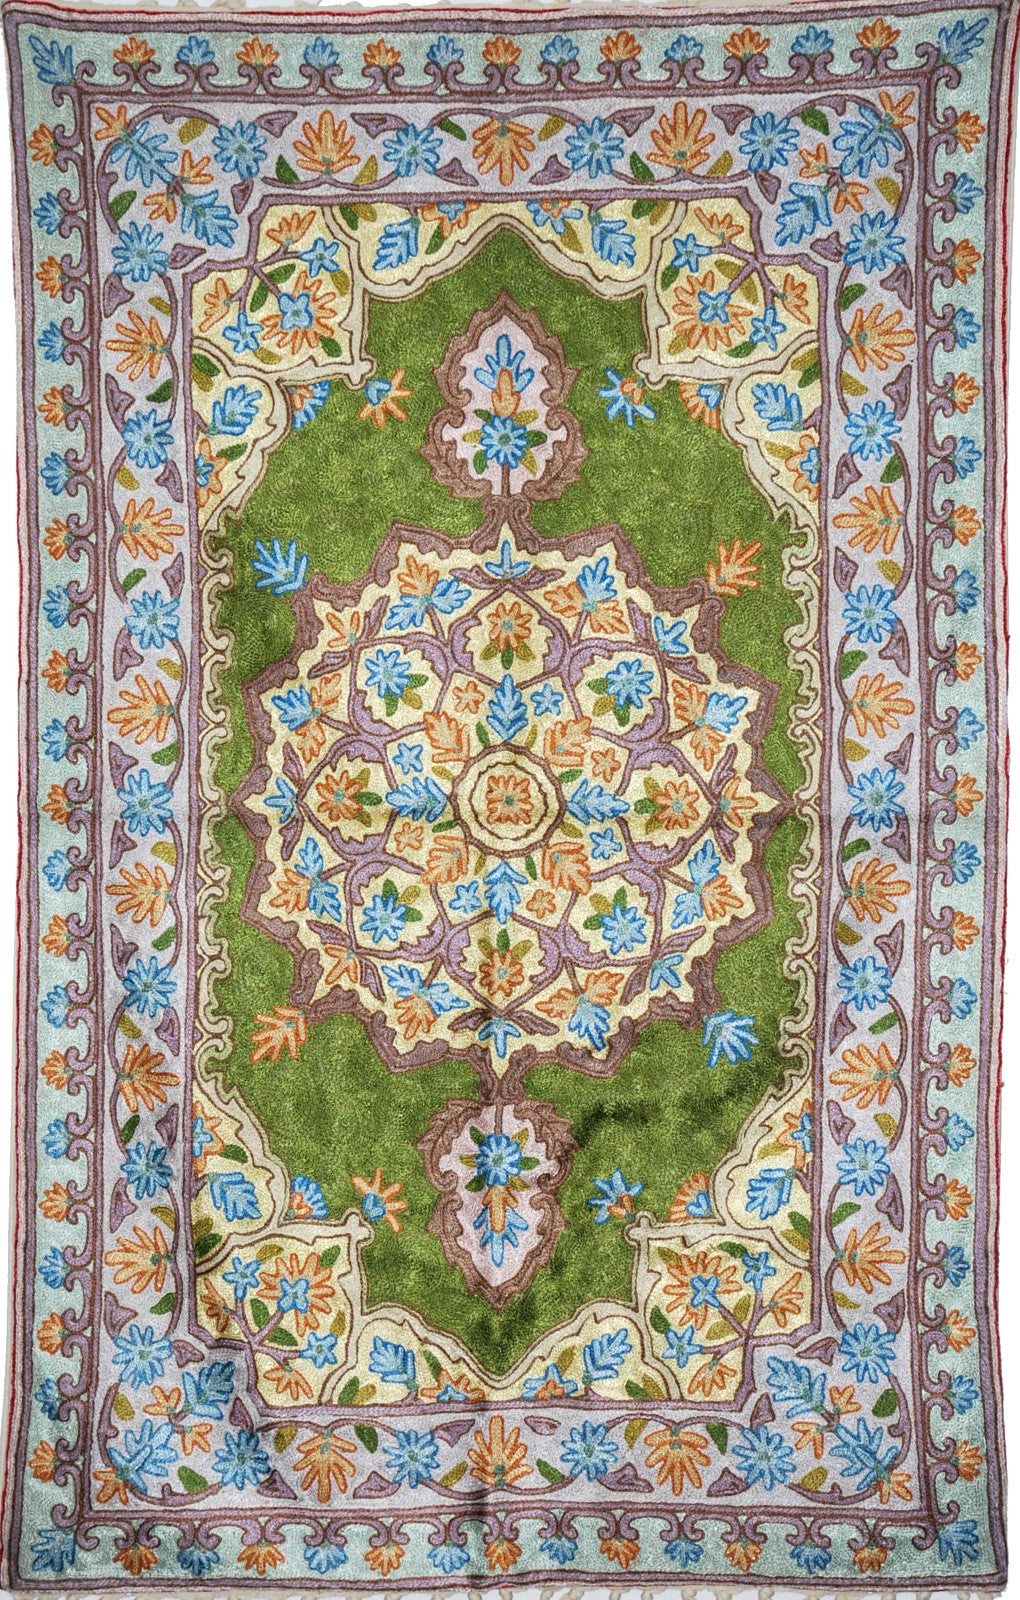 ChainStitch Tapestry Silk Rug, Blue Green Embroidery 2.5x4 feet #CWR10111